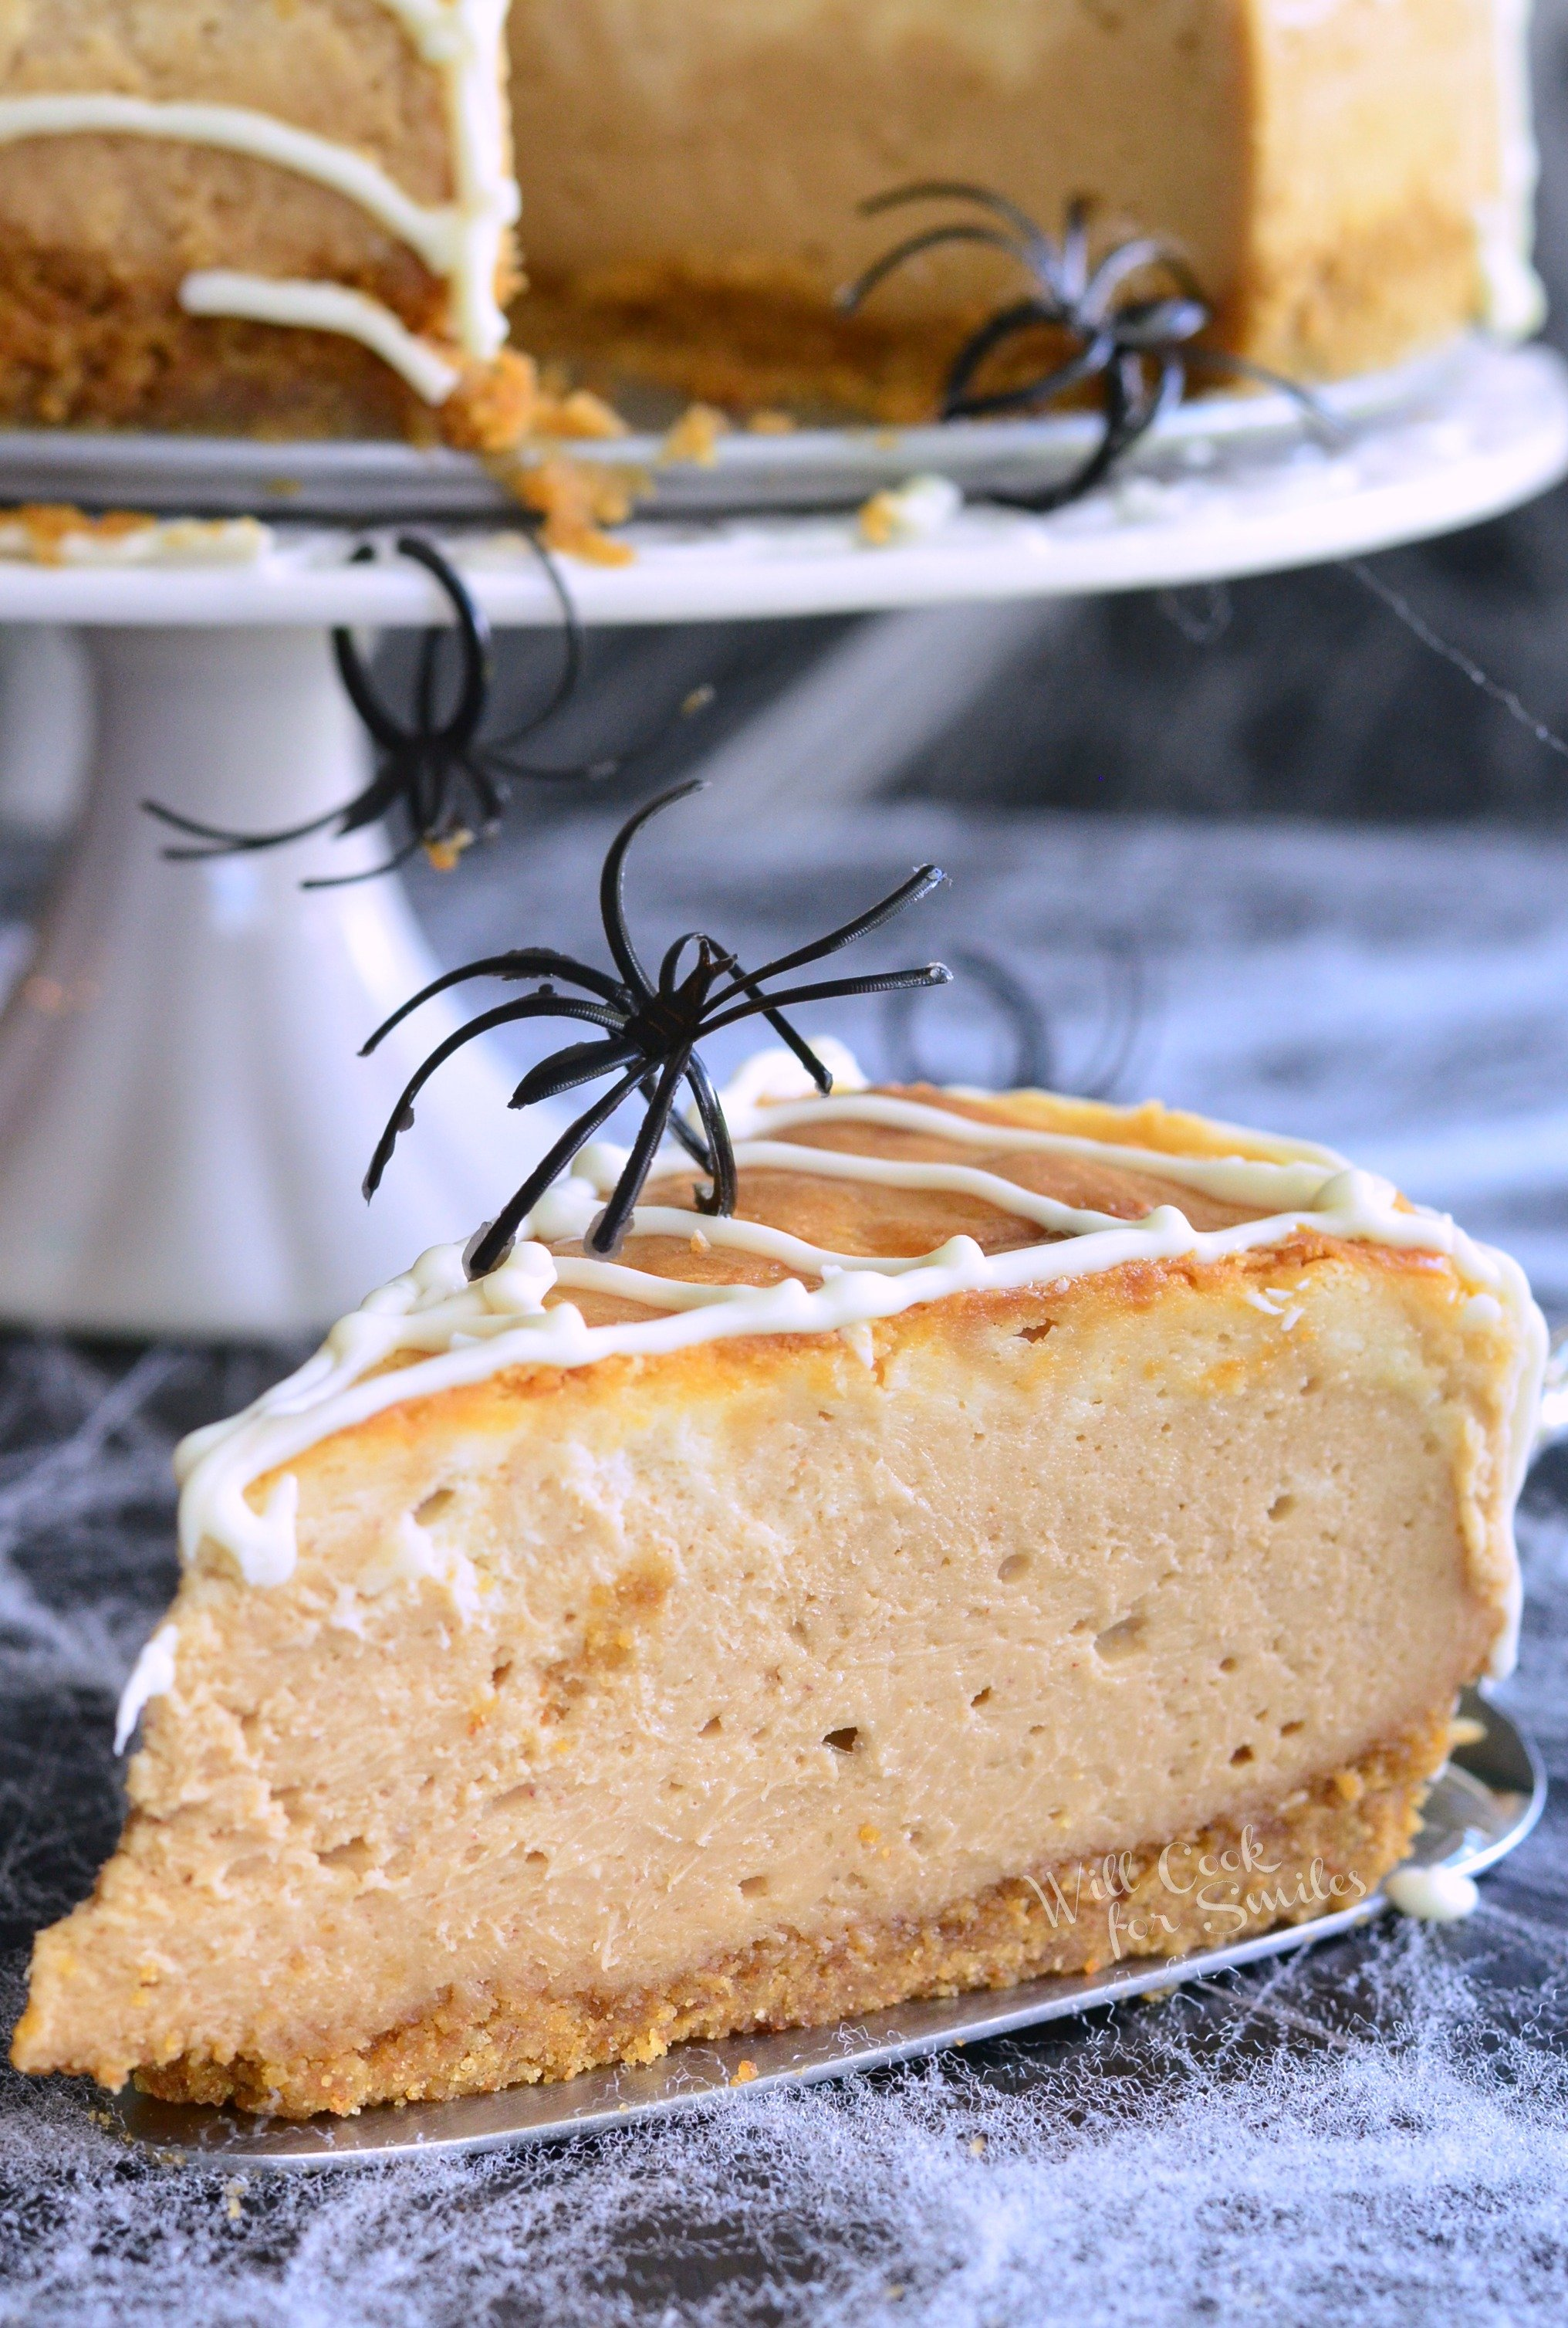 Spider Web Cheesecake (White Chocolate Peanut Butter Cheesecake)